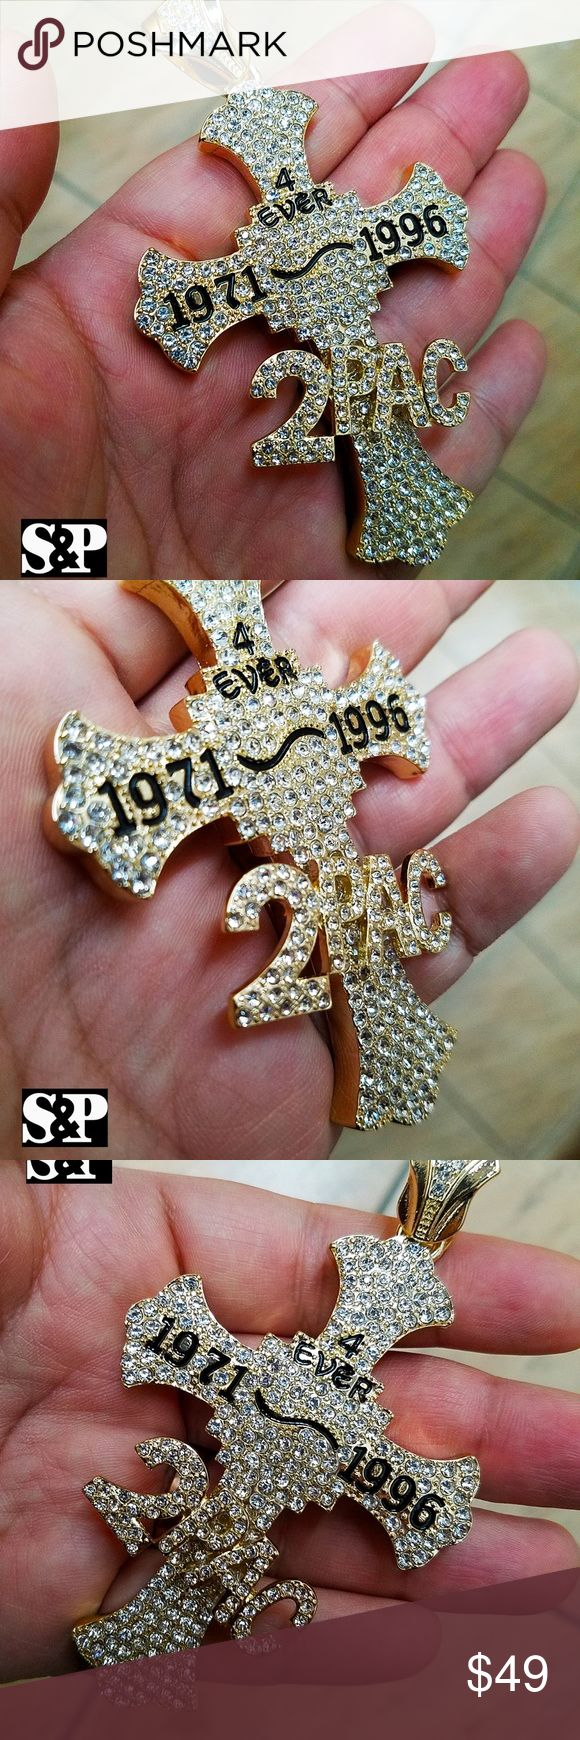 "HIP HOP ICED OUT GOLD PT 2PAC CROSS LARGE PENDANT Brand New   Hip Hop Celebrity Style Pendant   14K GOLD PLATED  SIZE OF PENDANT : 2.25"" X 4""  Lab Diamonds on pendant  High Quality & Polished Accessories Jewelry"